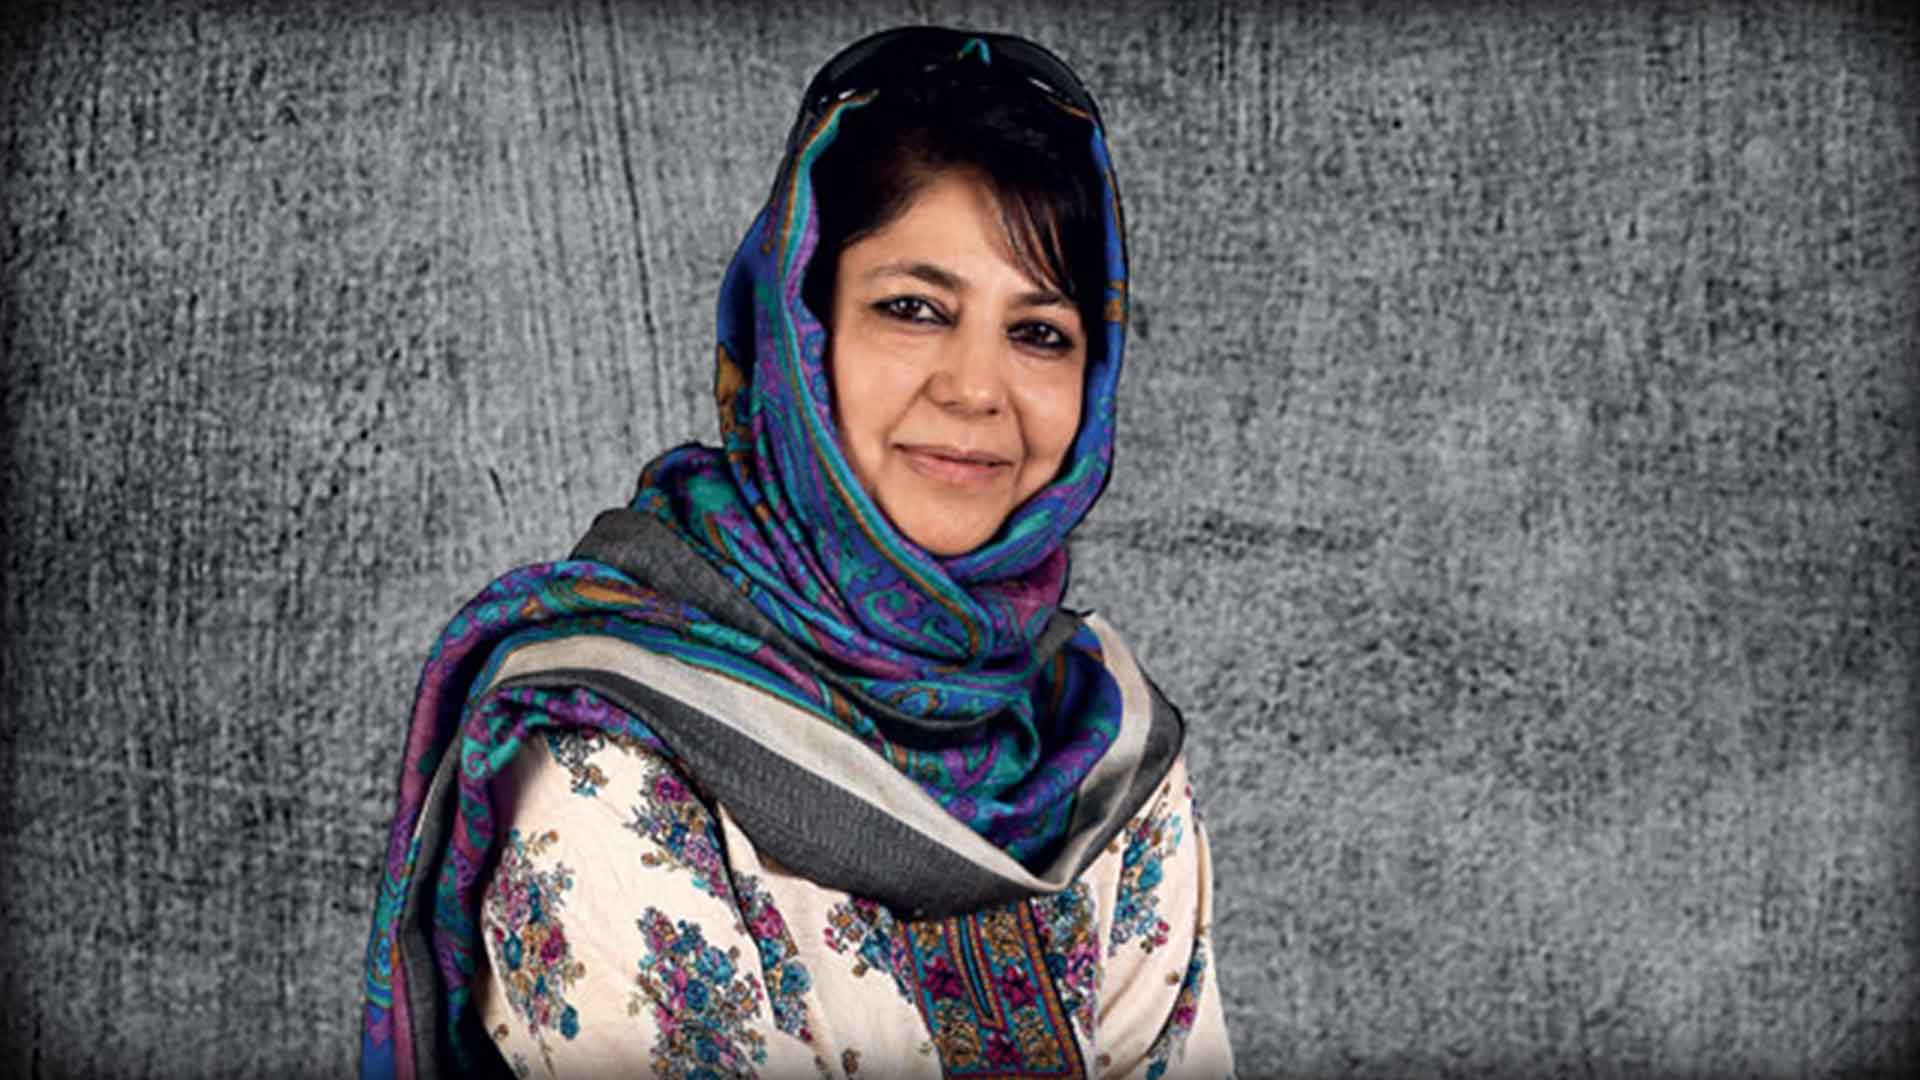 PDP CHIEF MEHBOOBA MUFTI